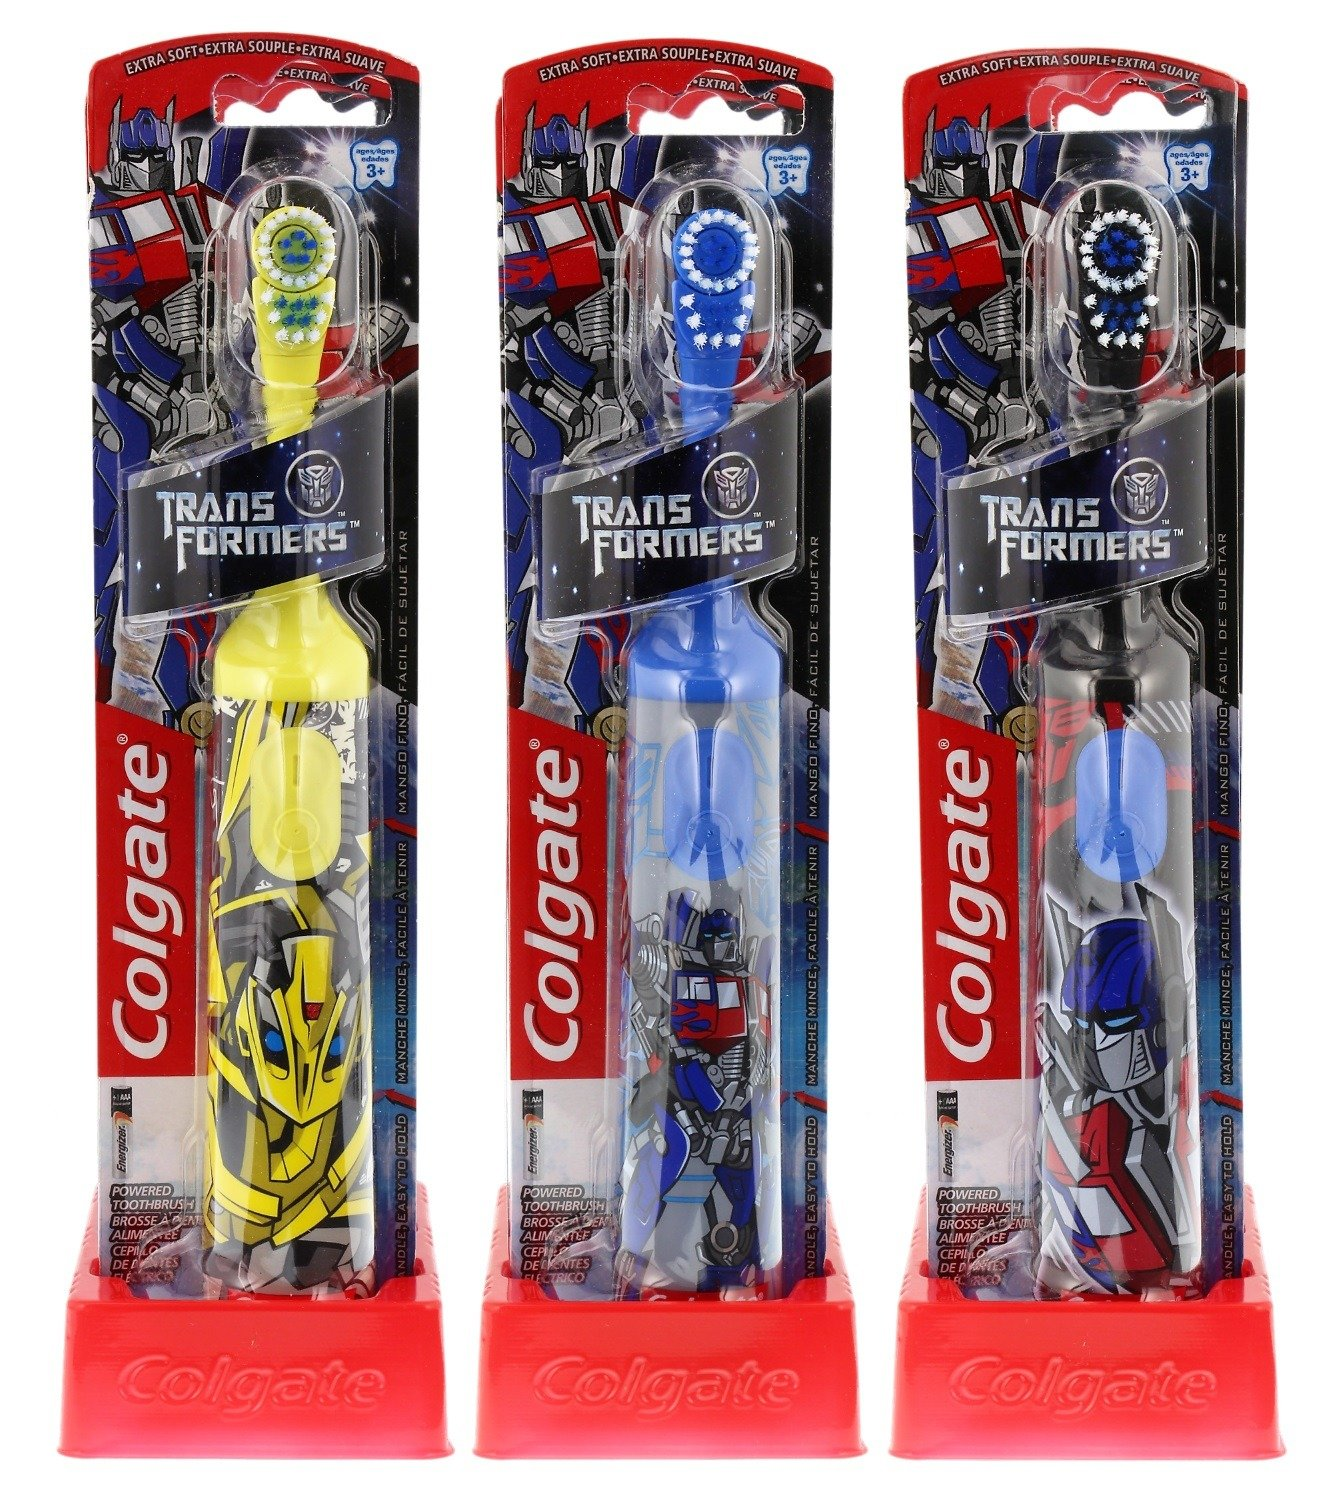 Colgate Transformers Kids Powered Toothbrush, Extra Soft, 1 Count (Colors May Vary), Assorted Colgate-Palmolive CA 68753